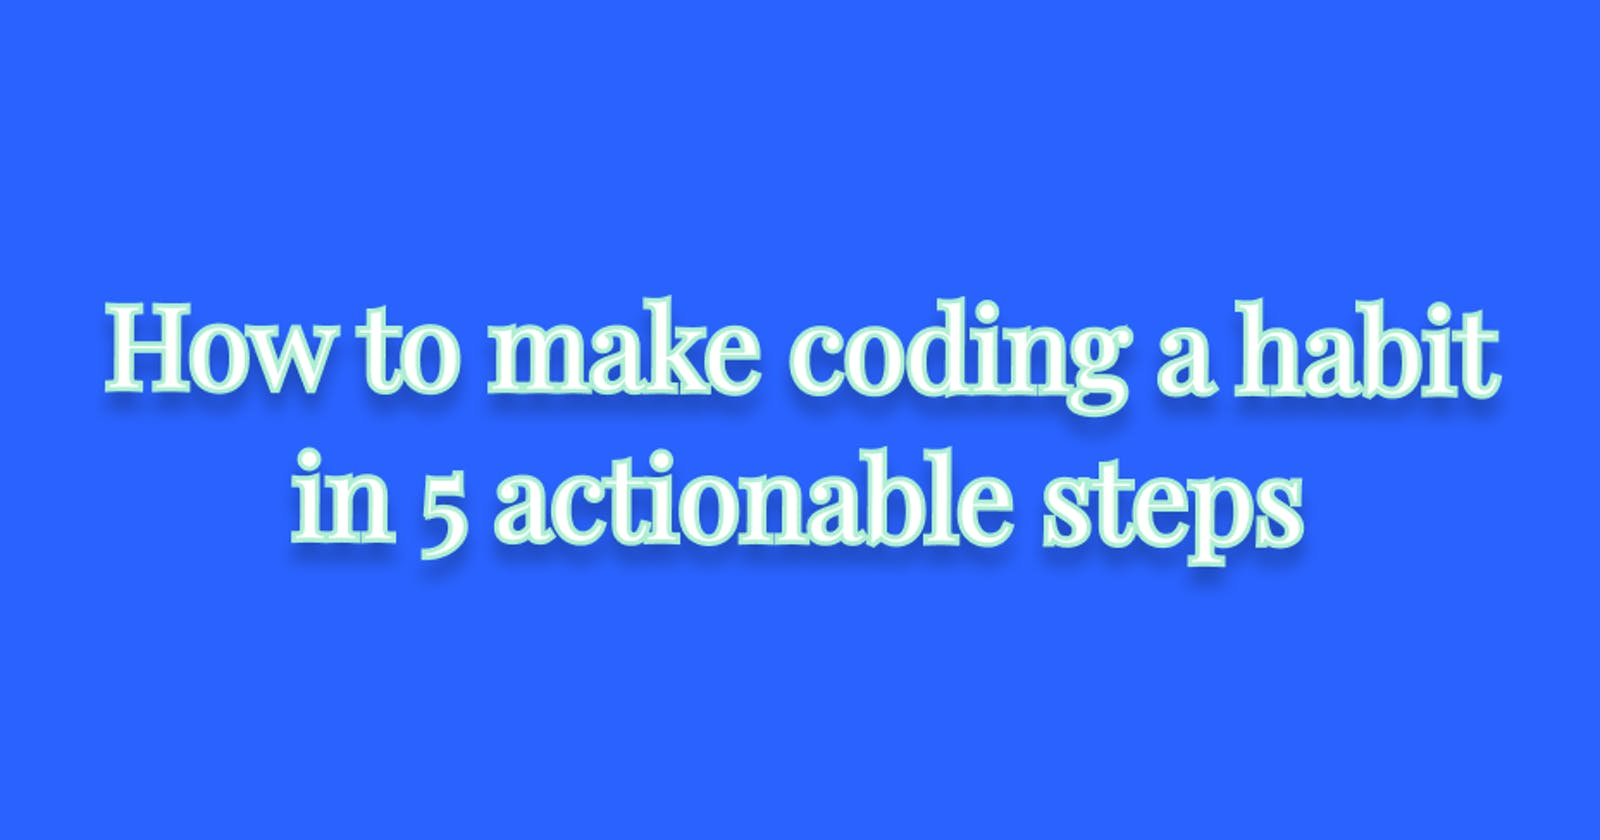 How to make coding a habit in 5 actionable steps